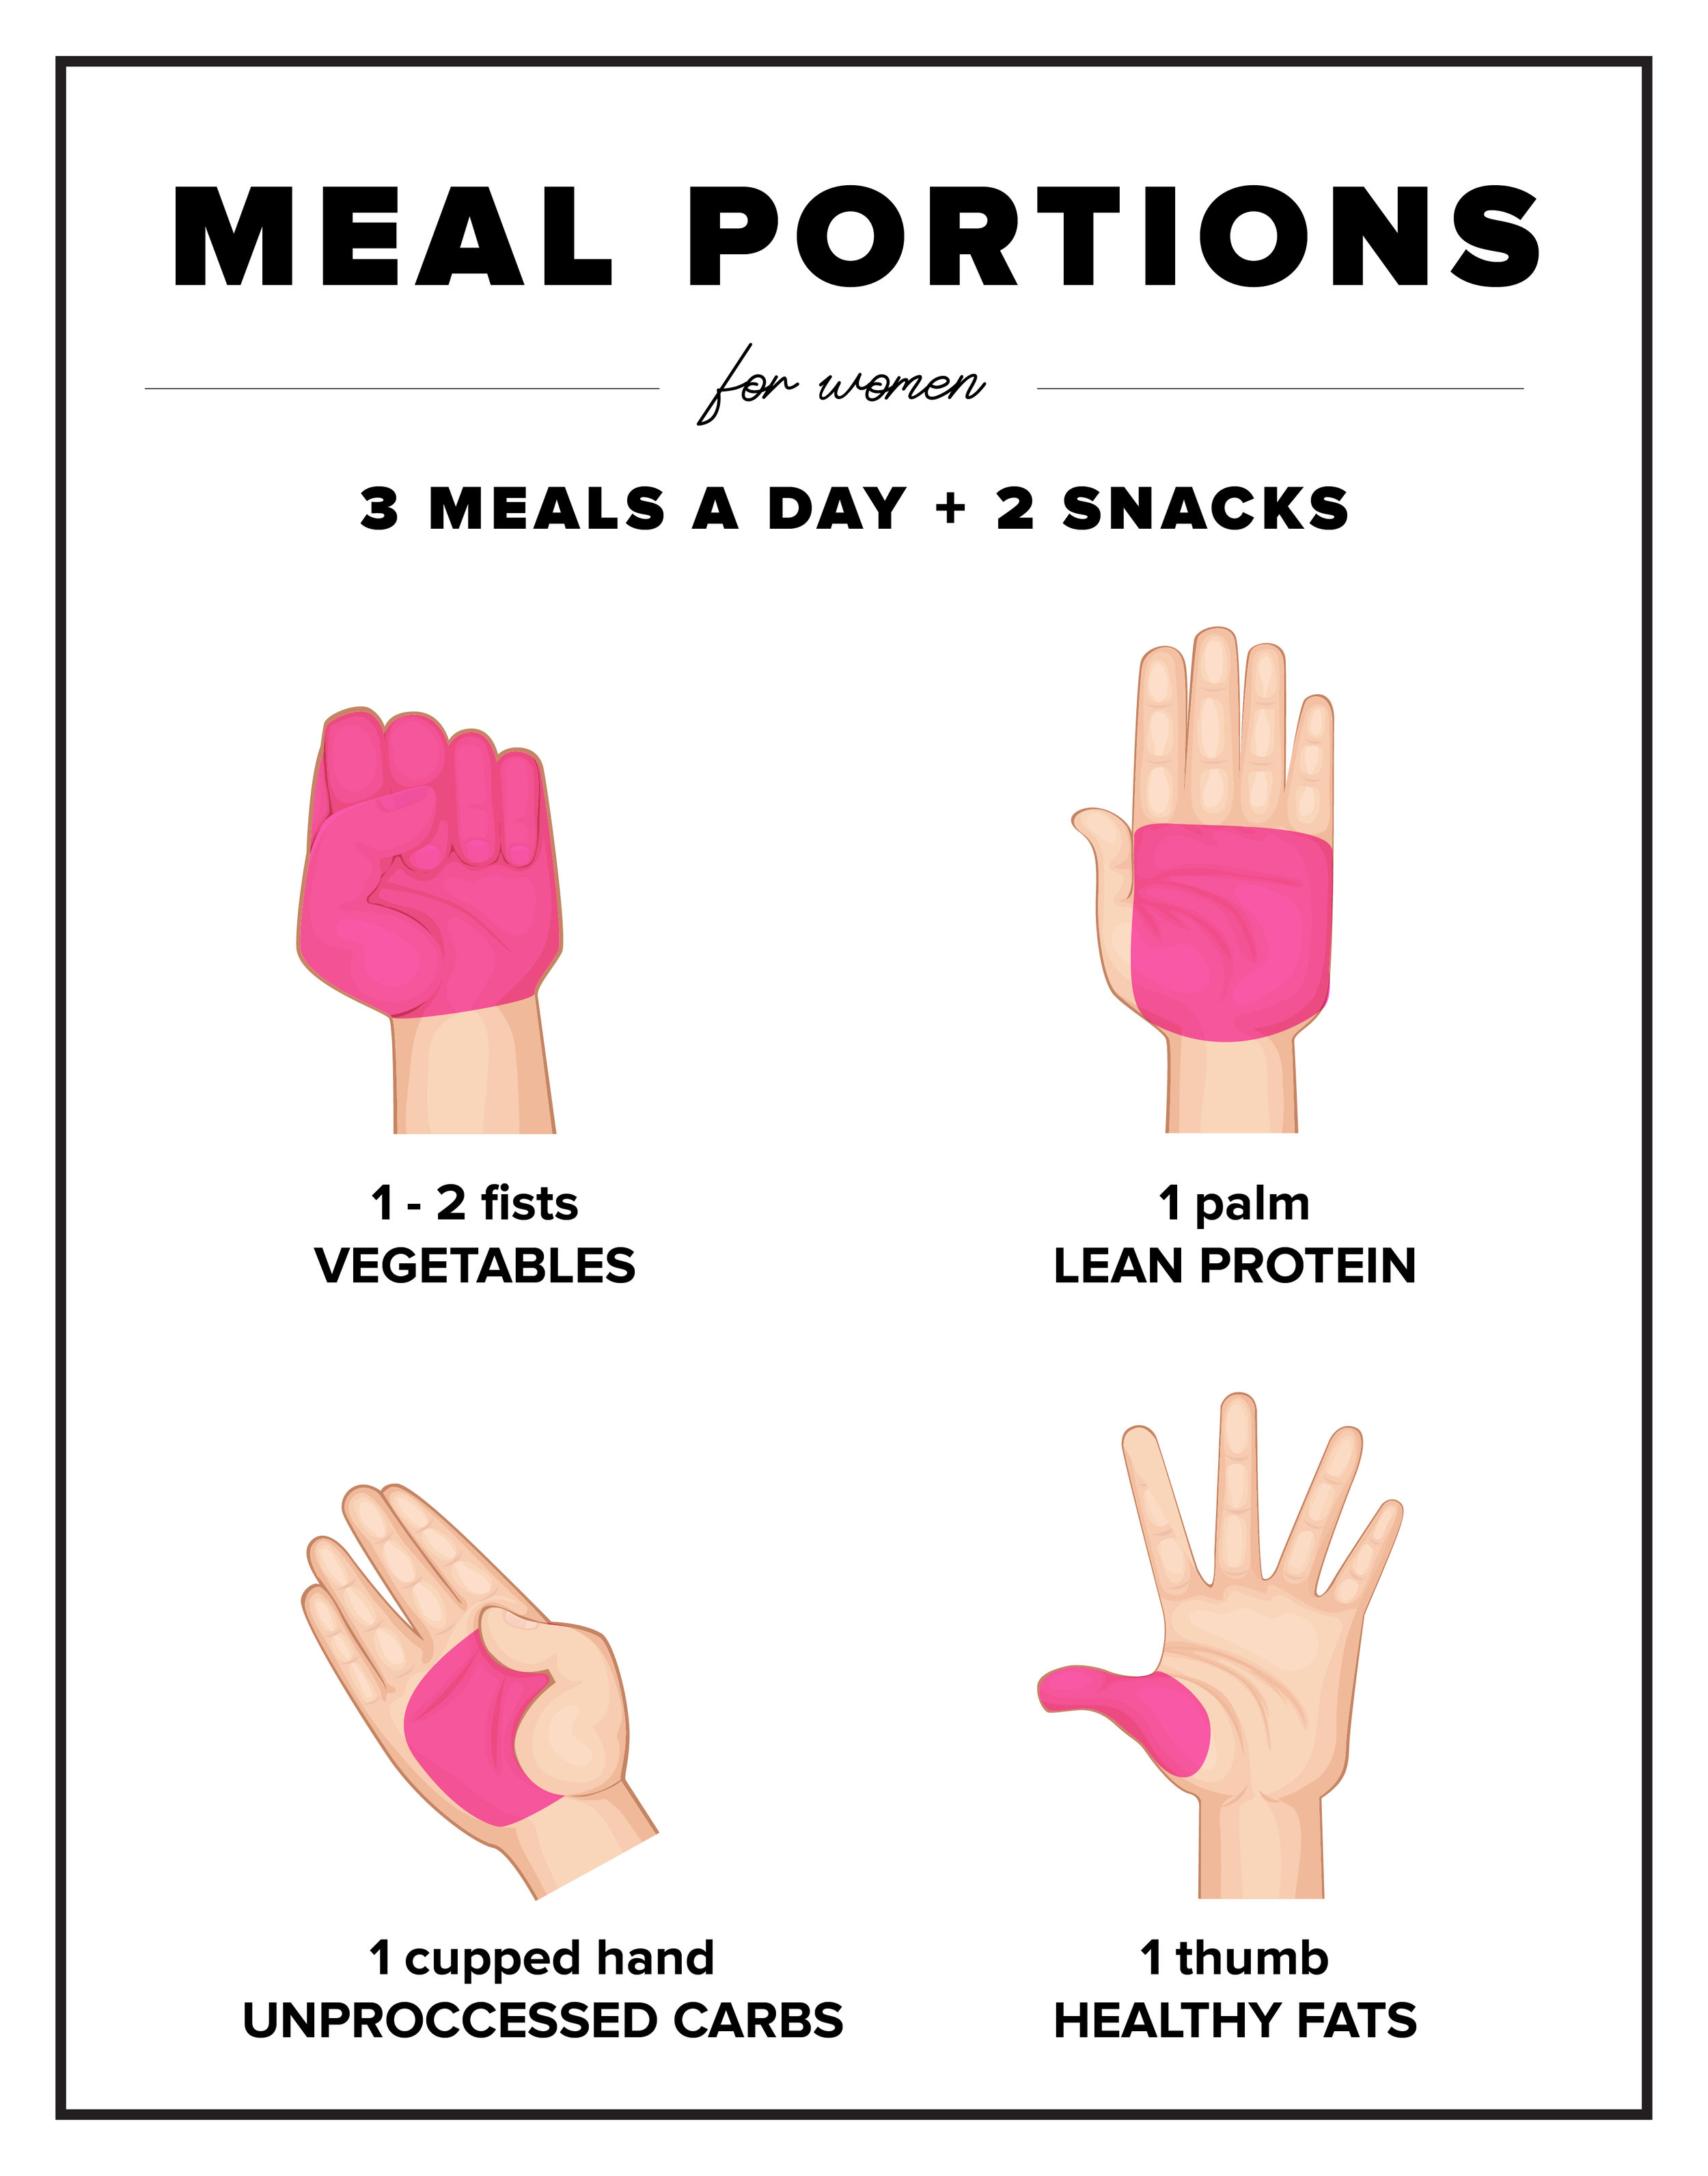 Healthy meal portions for women trying to get lean and fit for summer.